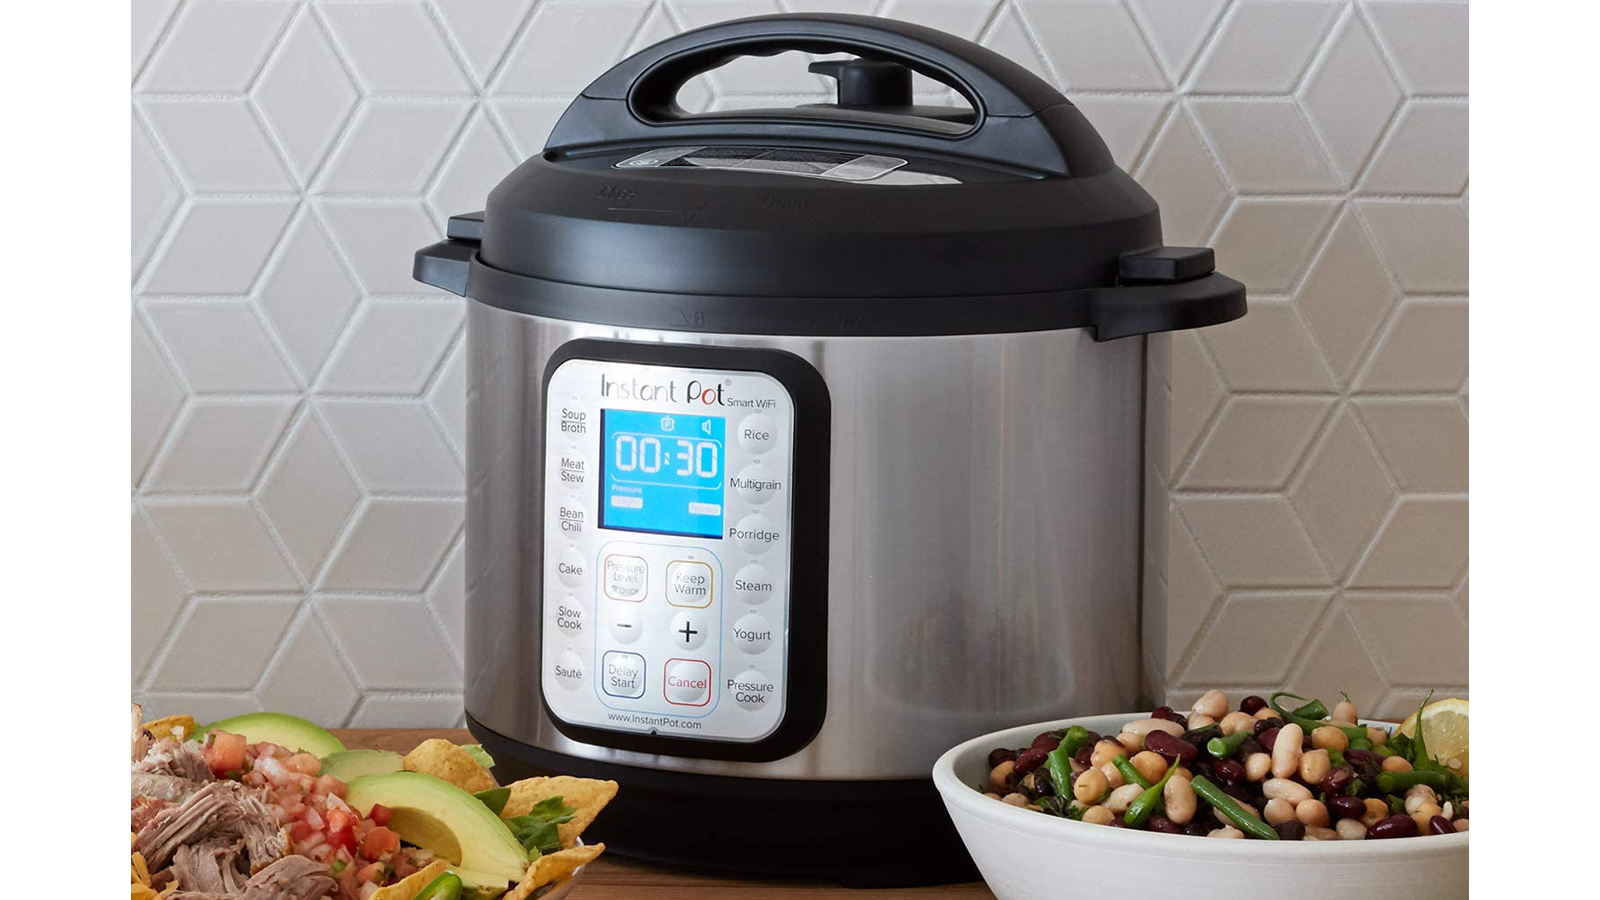 Instant Pot Smart WiFi on table next to two bowls of cooked food